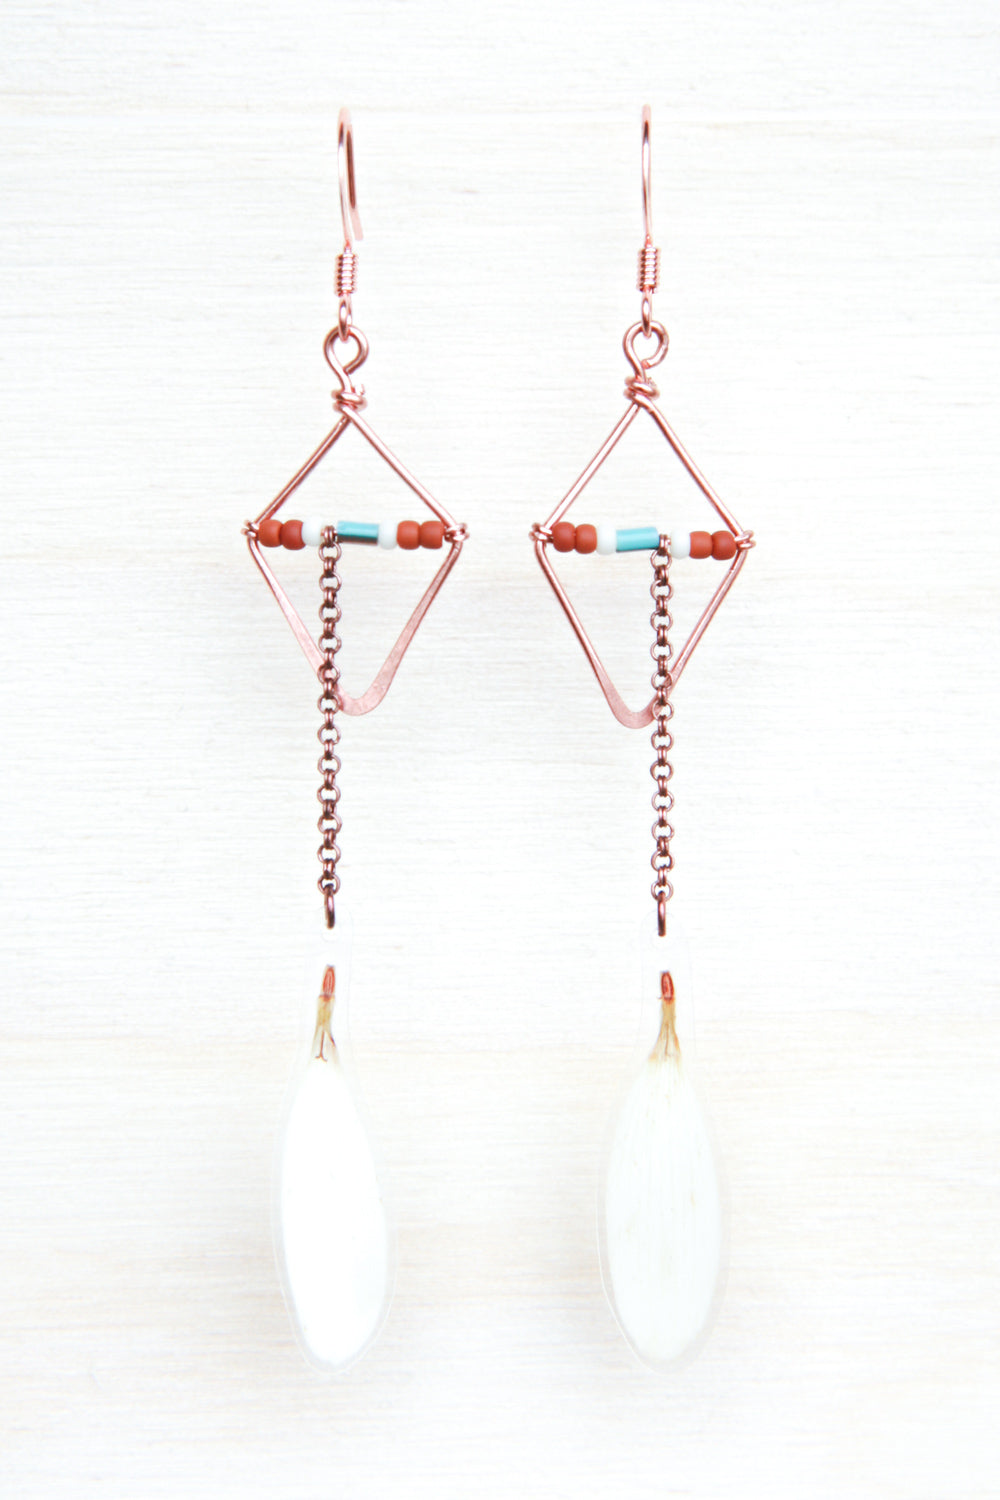 White Shasta Daisy Pressed Petal Earrings with Hammered Copper Diamond Hoops & Terracotta, Cream & Turquoise Glass Beads